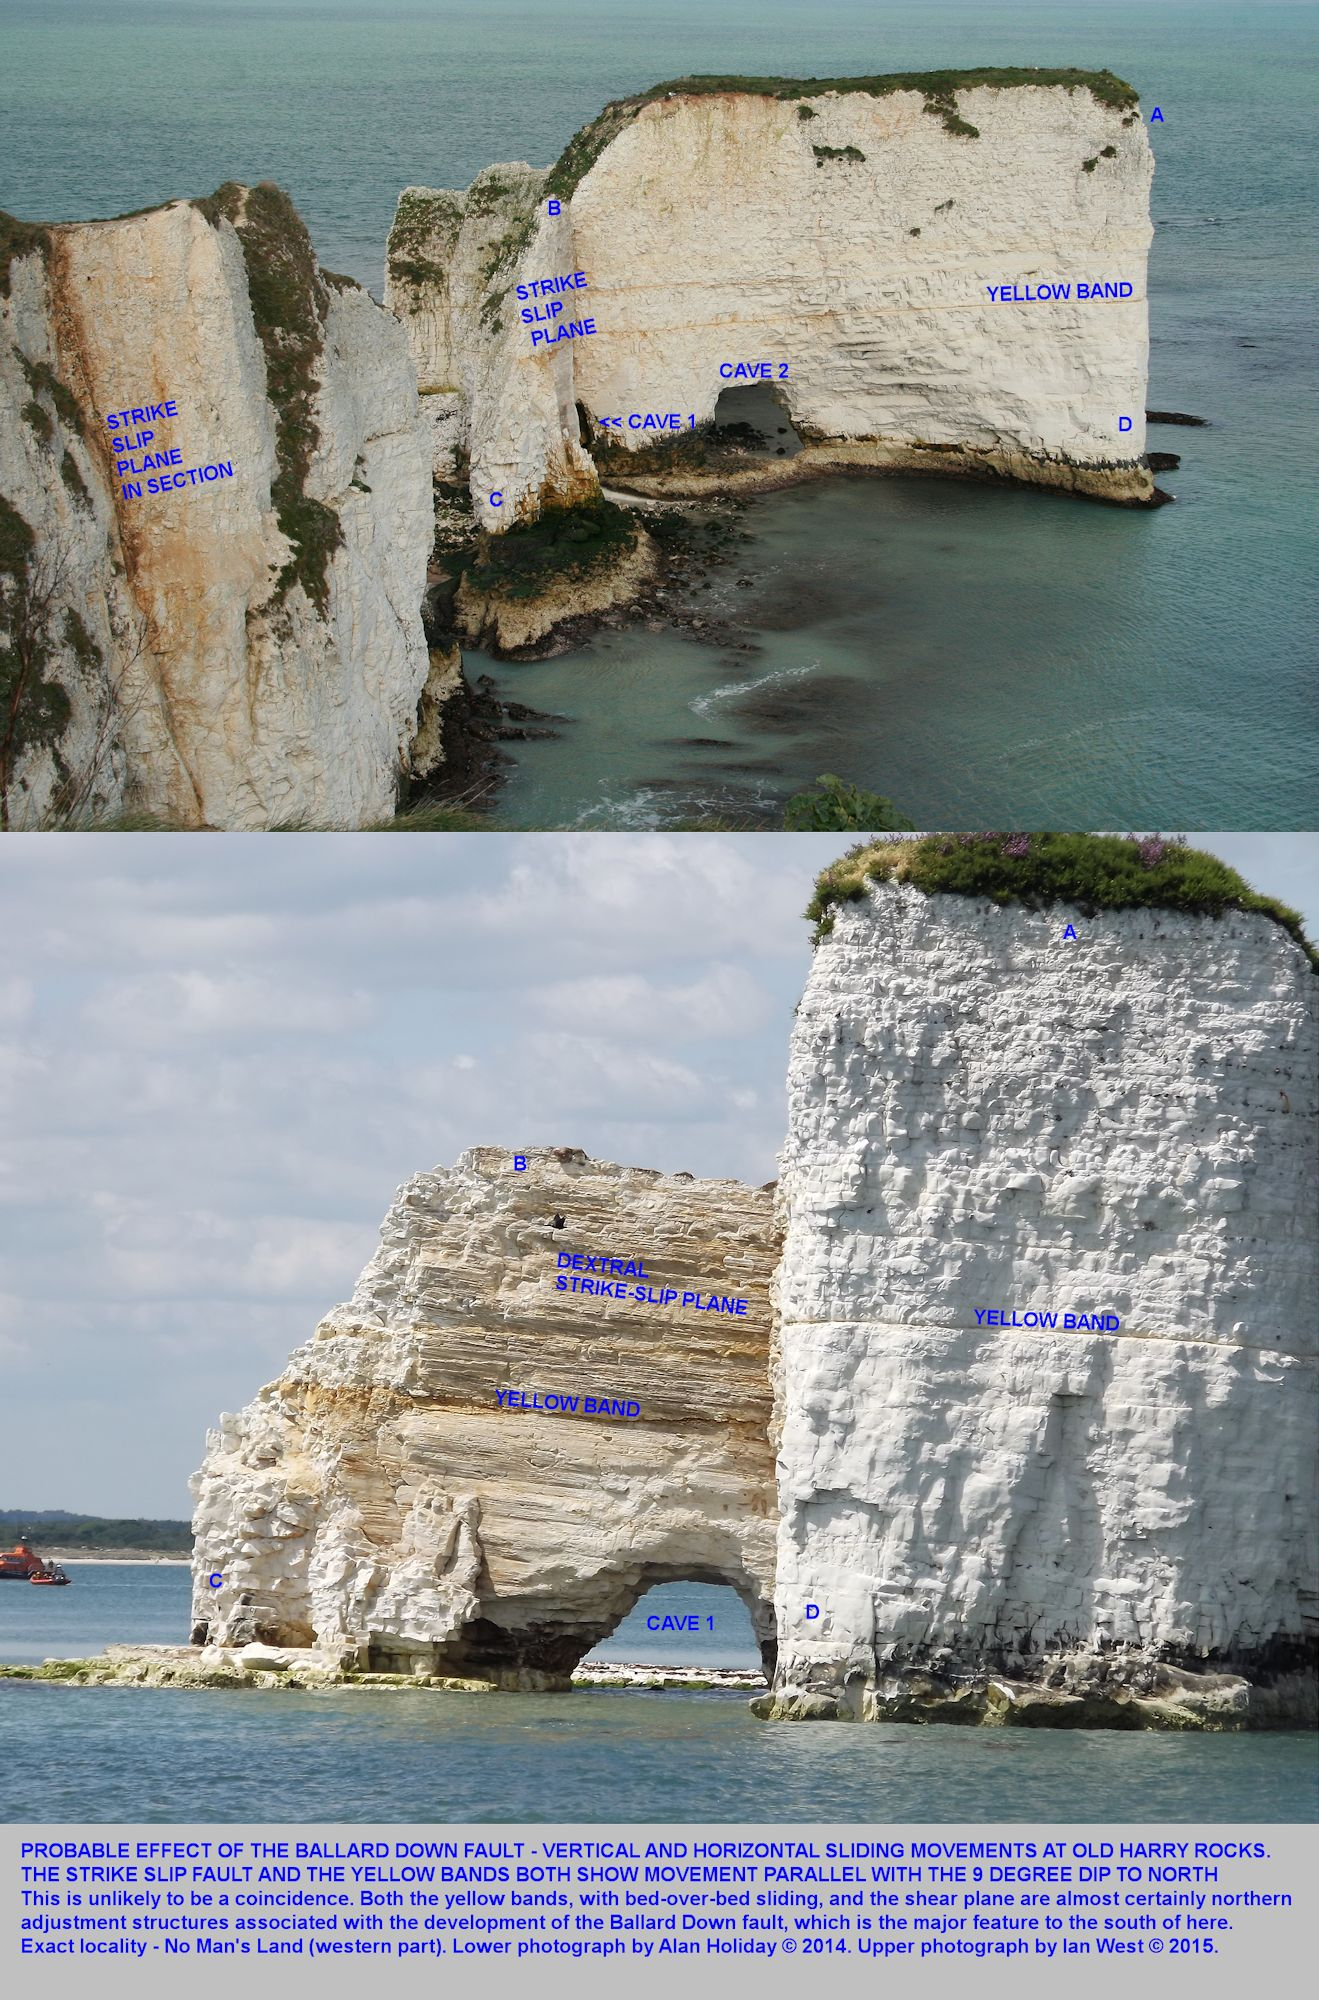 Two views at right-angles of the dextral, strike-slip shear plane and the bed-over-bed slides, or Yellow Bands at No Man's Land, Old Harry Rocks, Dorset, 2014 and 2015